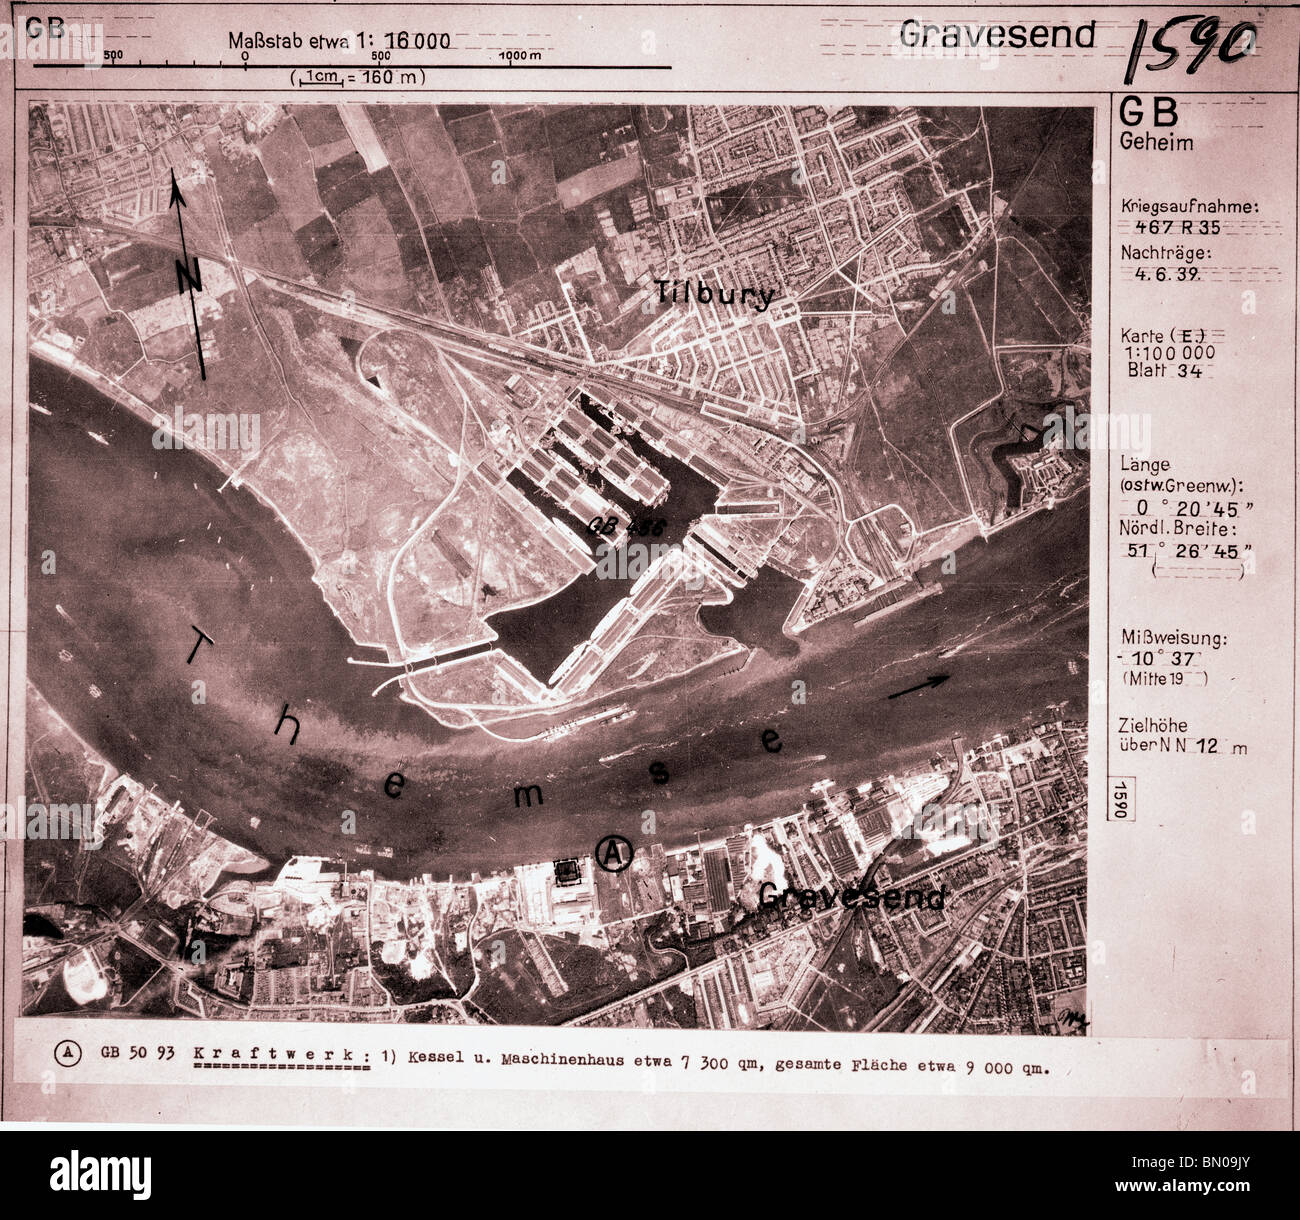 Gravesend - Kent 4th April 1940 Power Station Luftwaffe Aerial Image - Stock Image